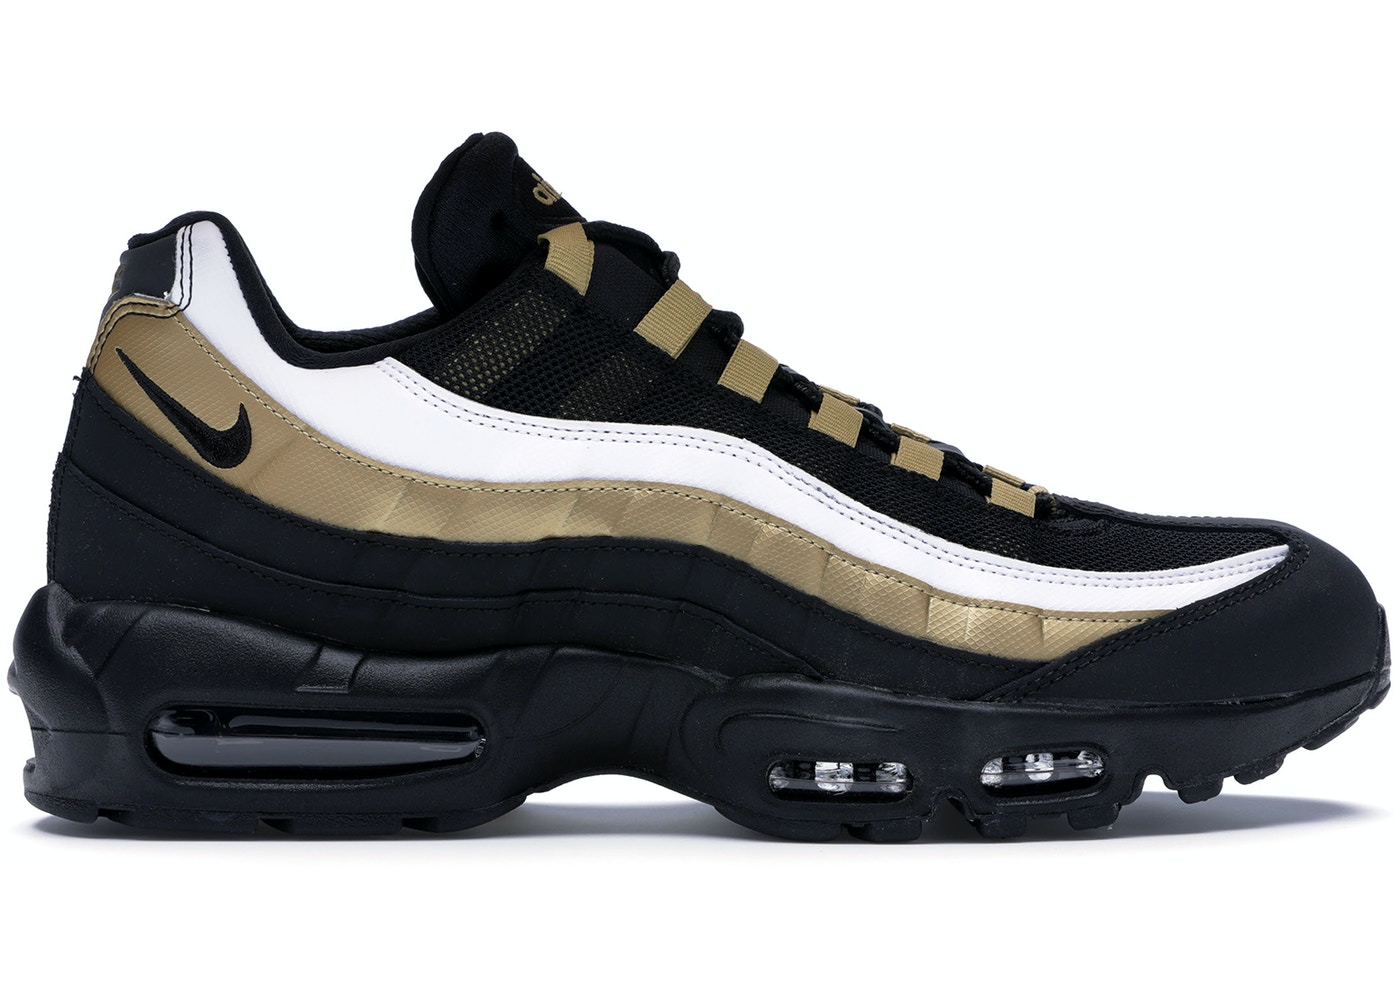 wholesale dealer 1f204 faacd Buy Nike Air Max 95 Shoes & Deadstock Sneakers